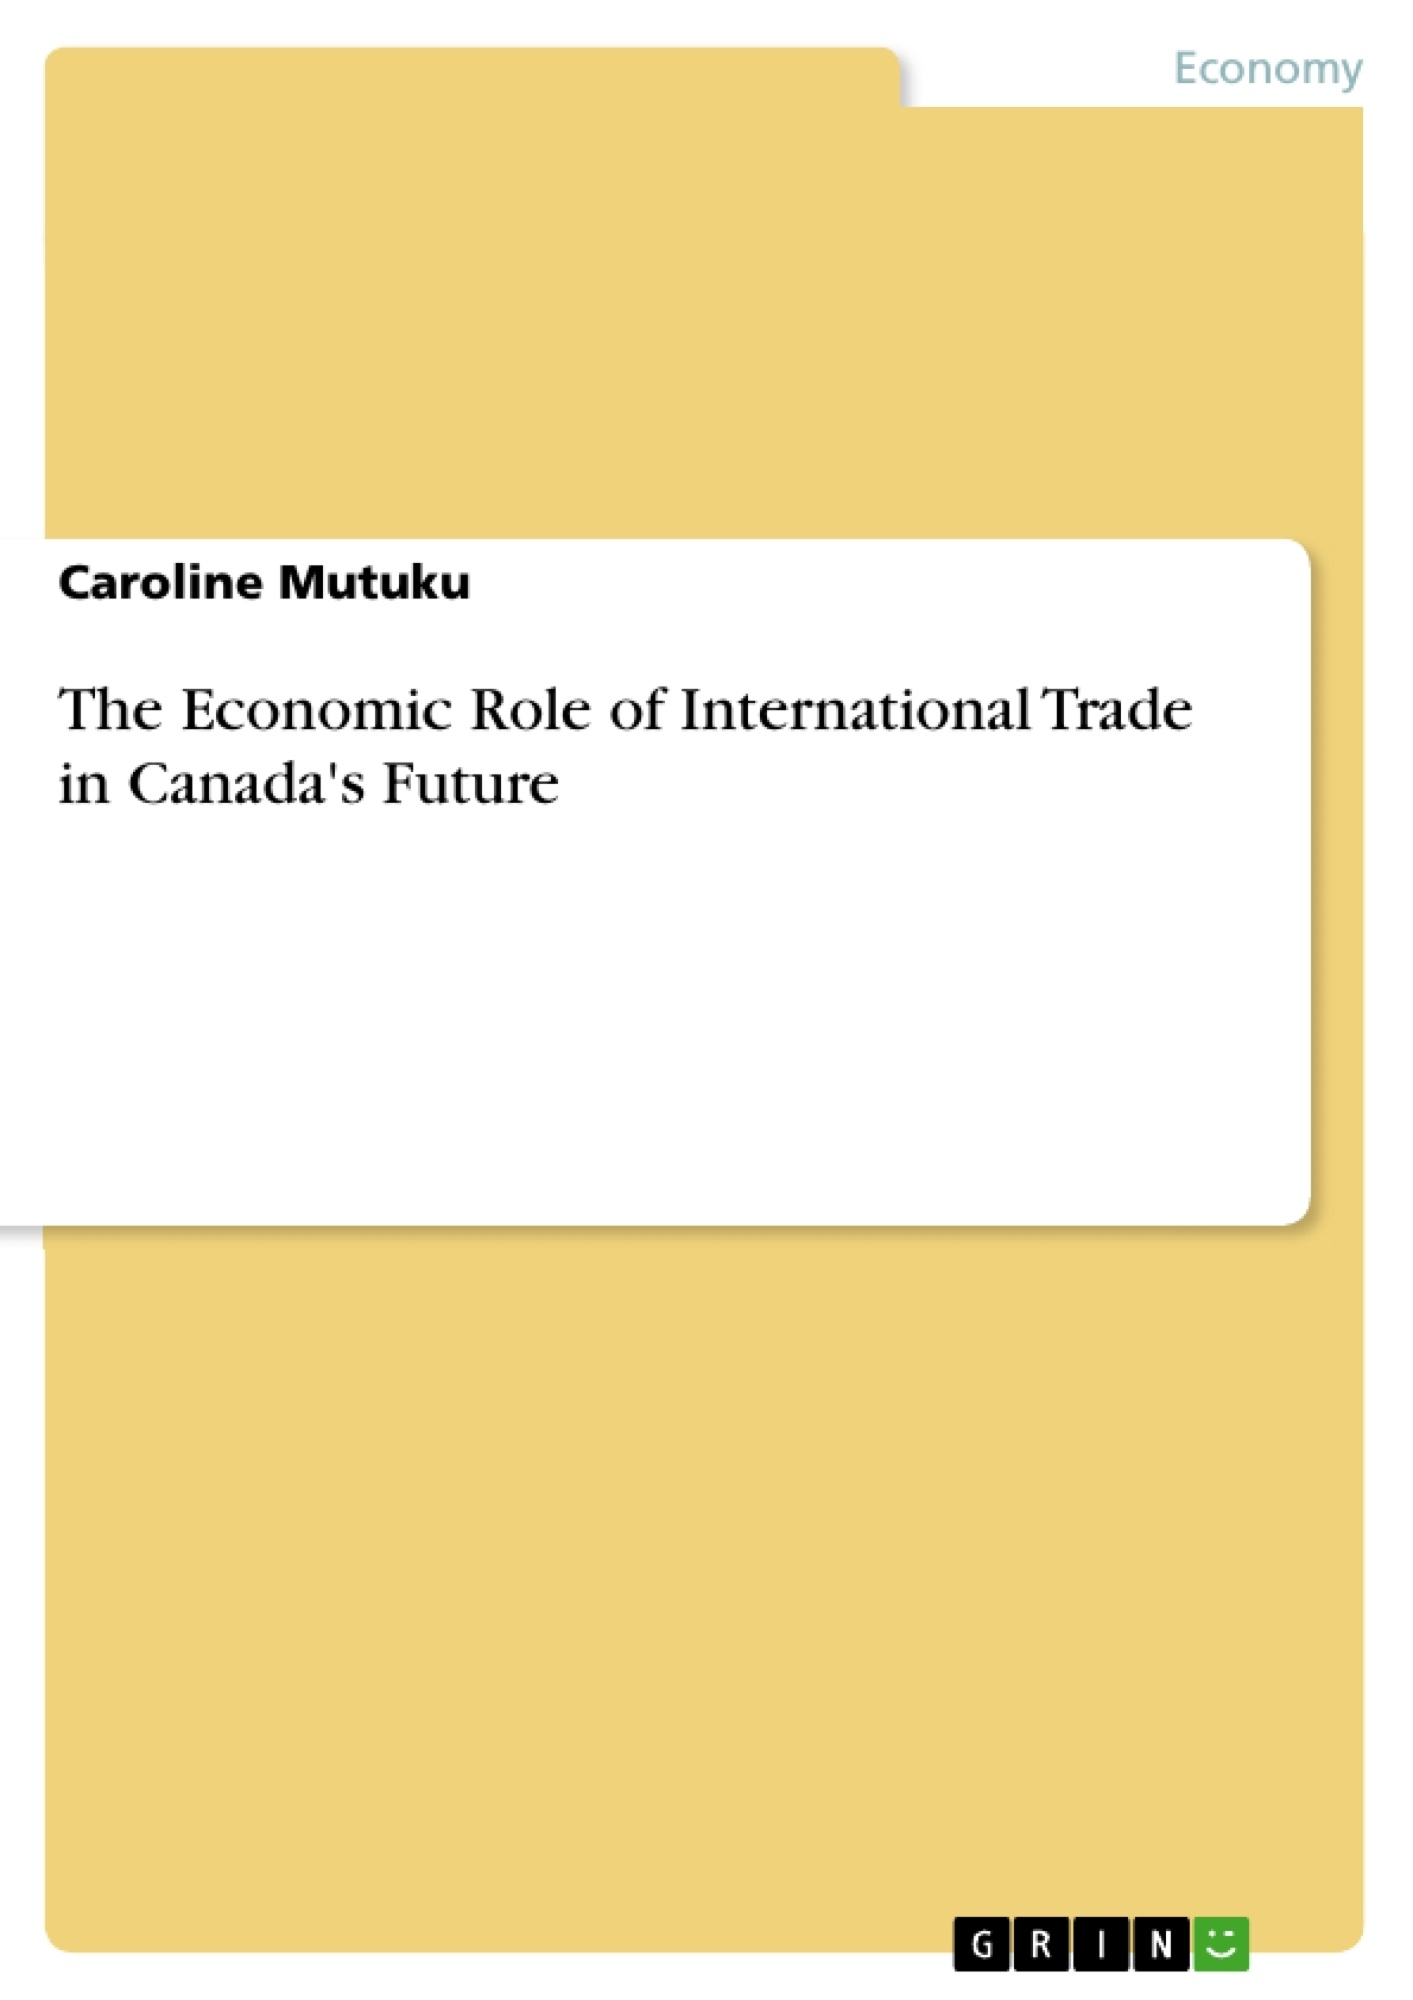 Title: The Economic Role of International Trade in Canada's Future